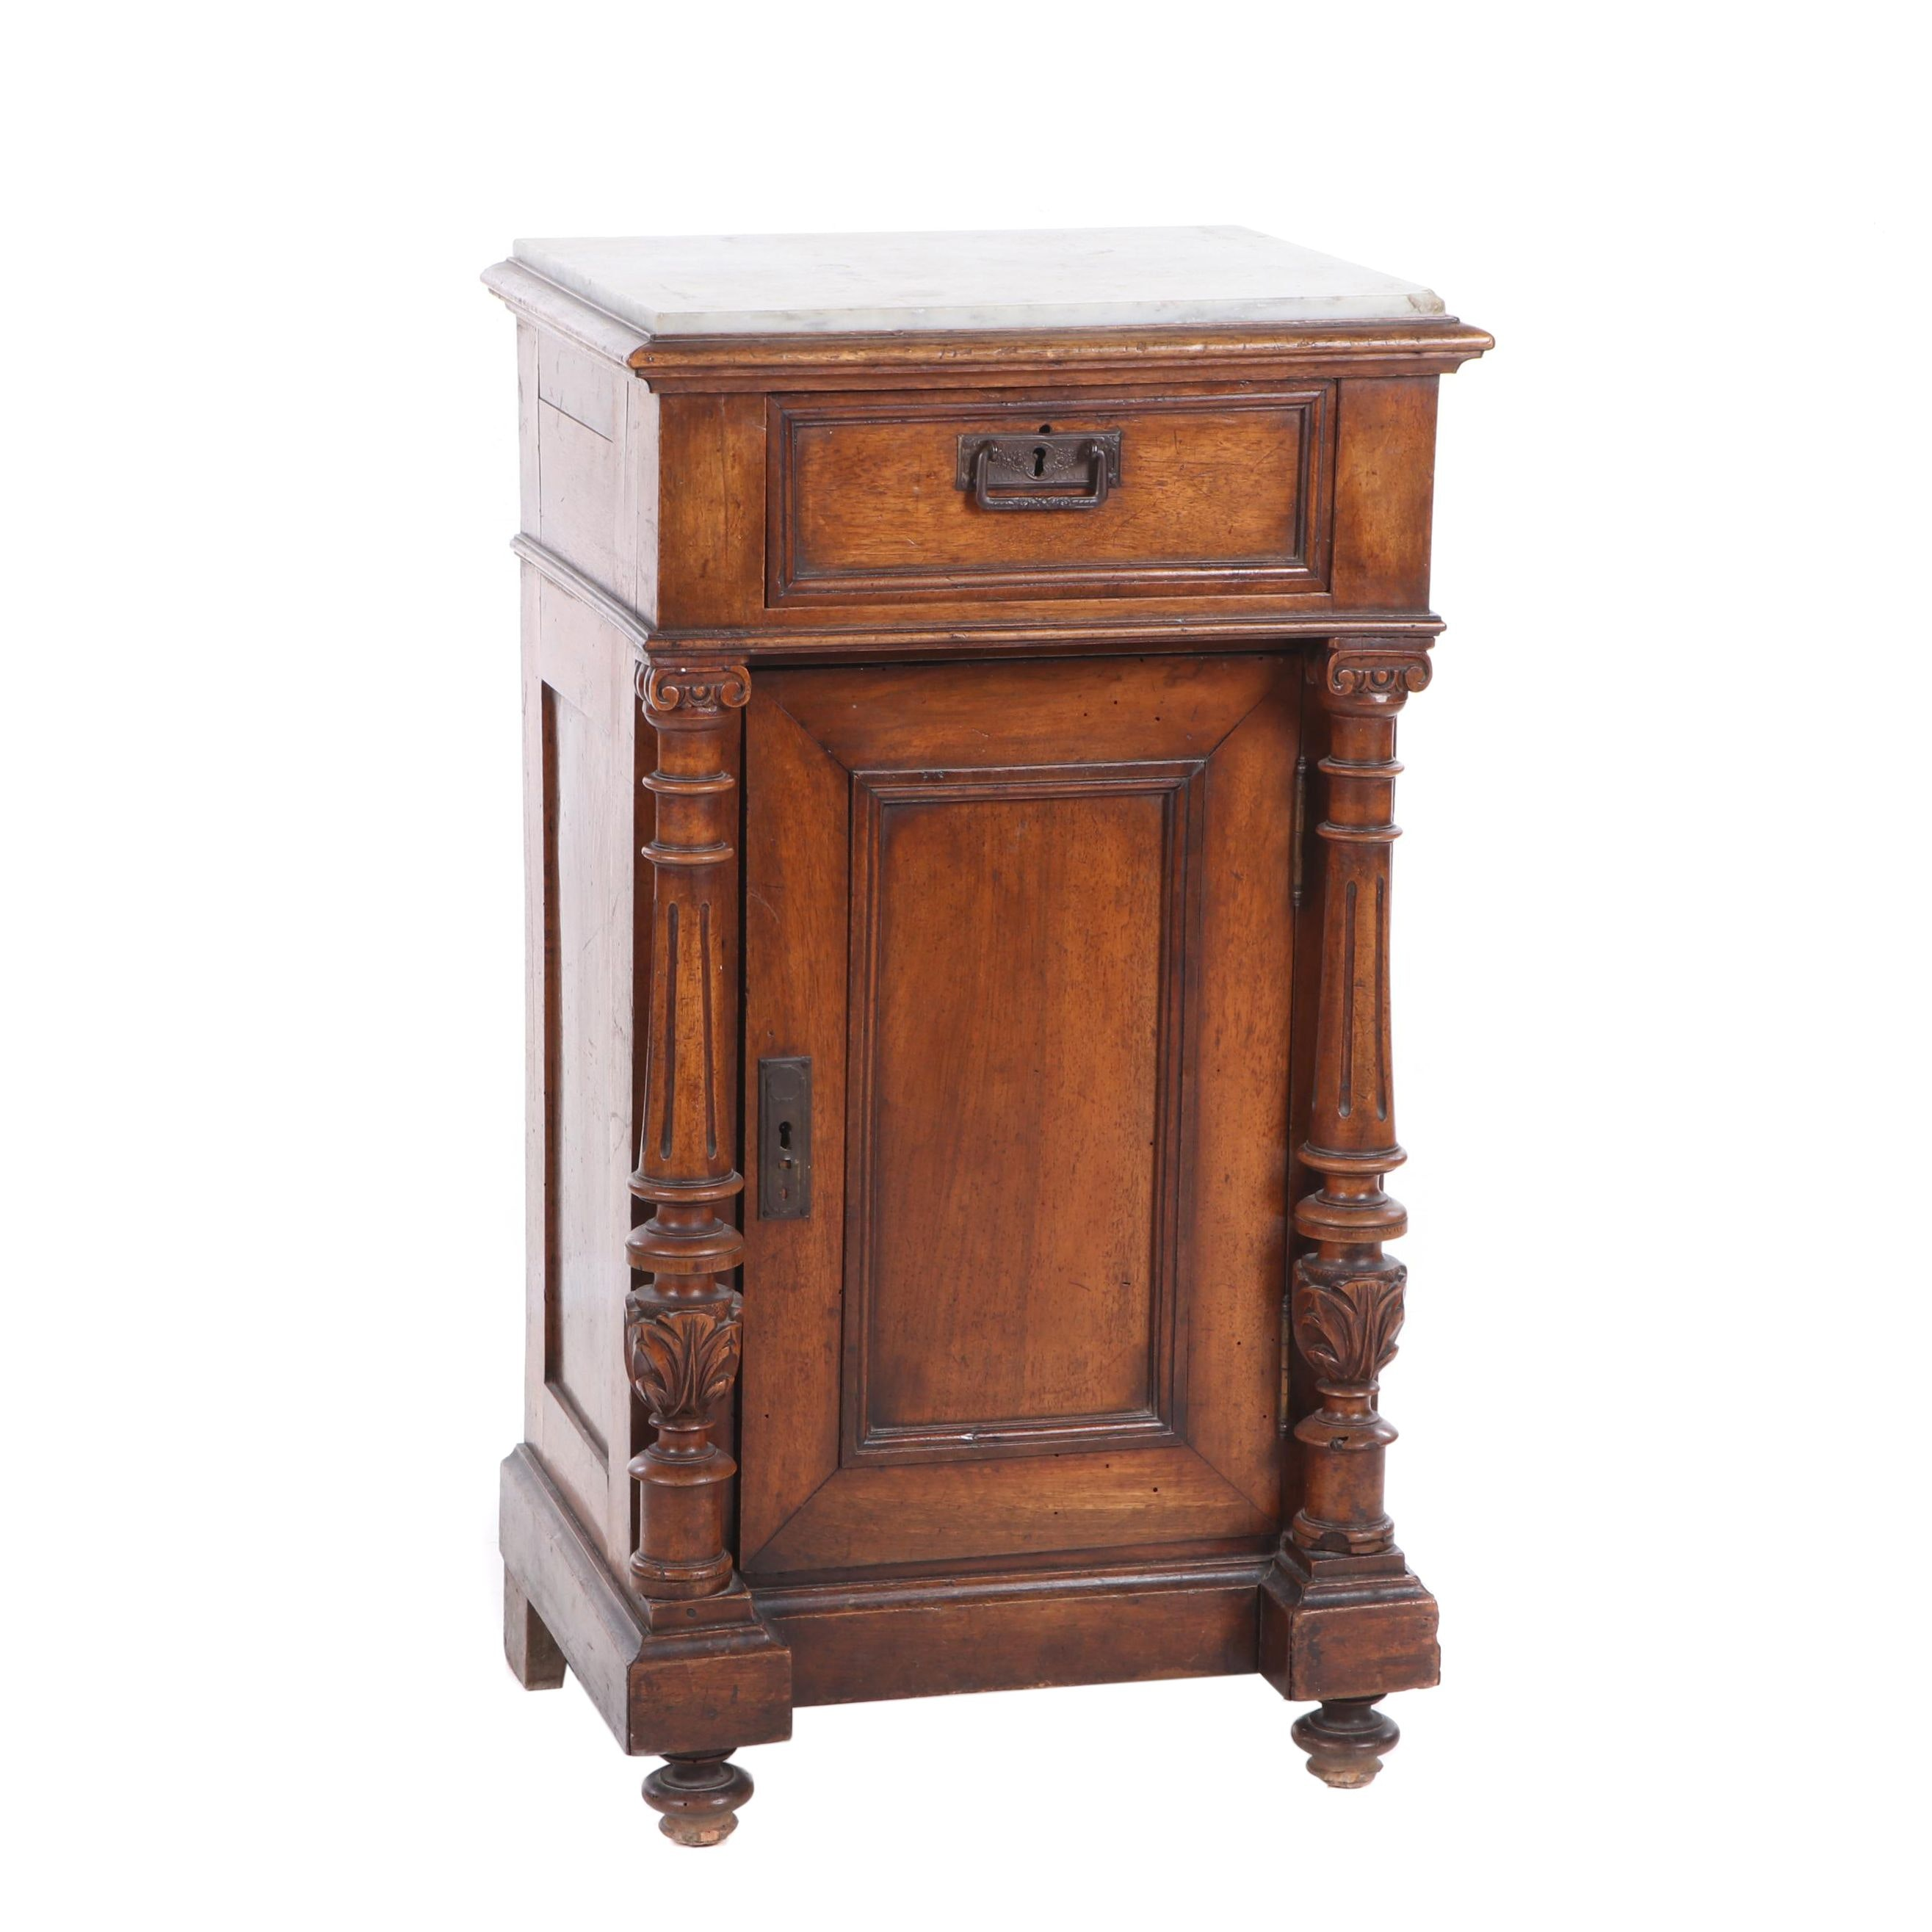 Renaissance Revival Walnut and Marble Cabinet, Mid 19th Century